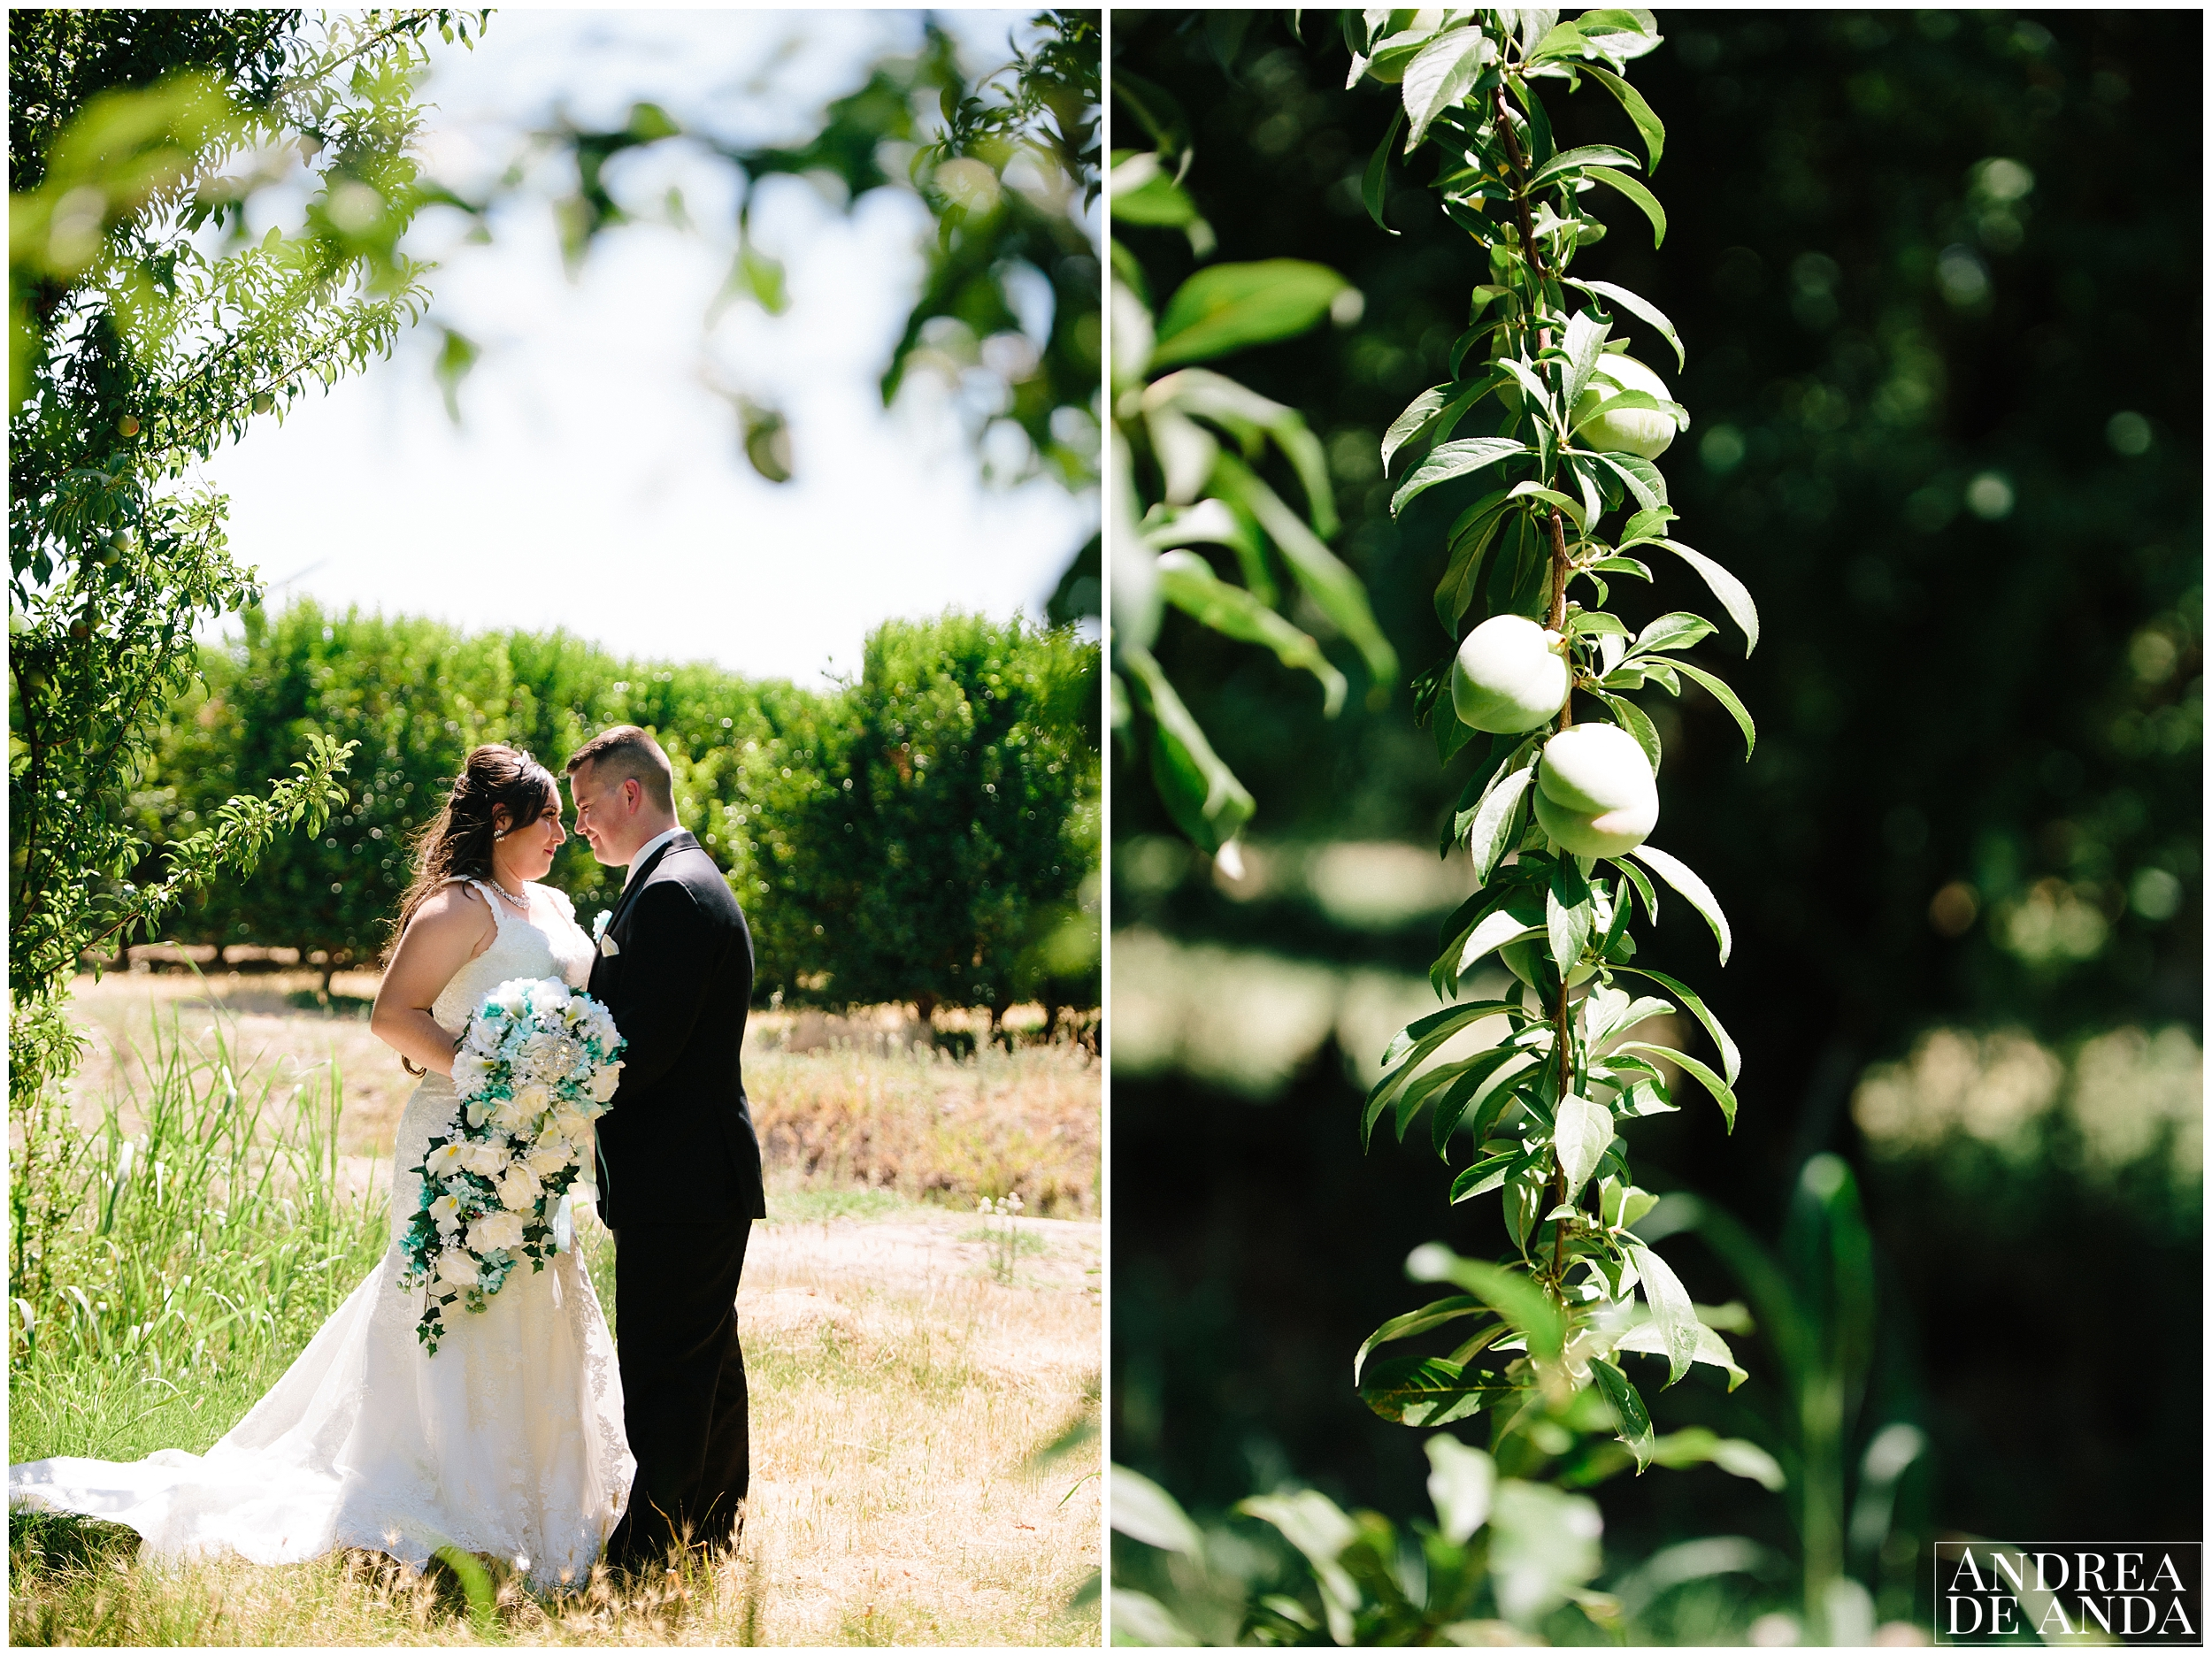 Bride and Groom creative pictures in the venue's apricot field